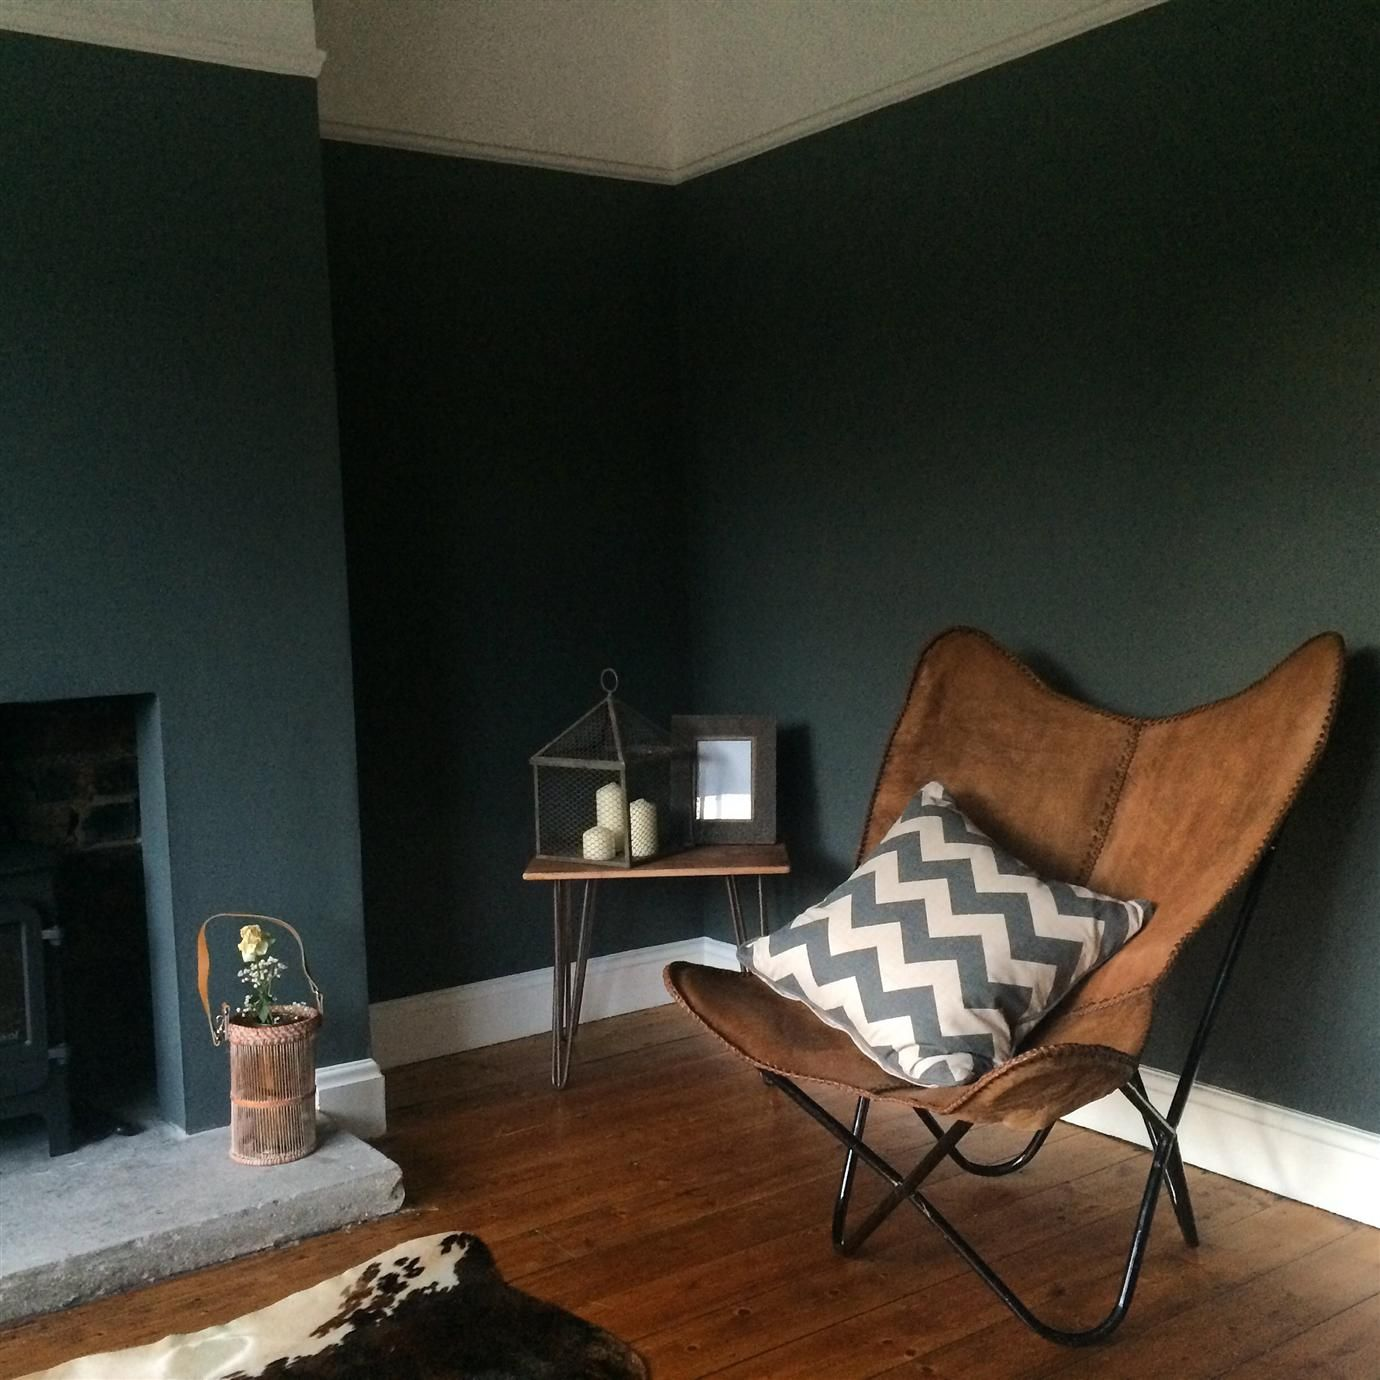 Farrow And Ball Pale Blue Bedroom: Walls In Farrow & Ball Down Pipe